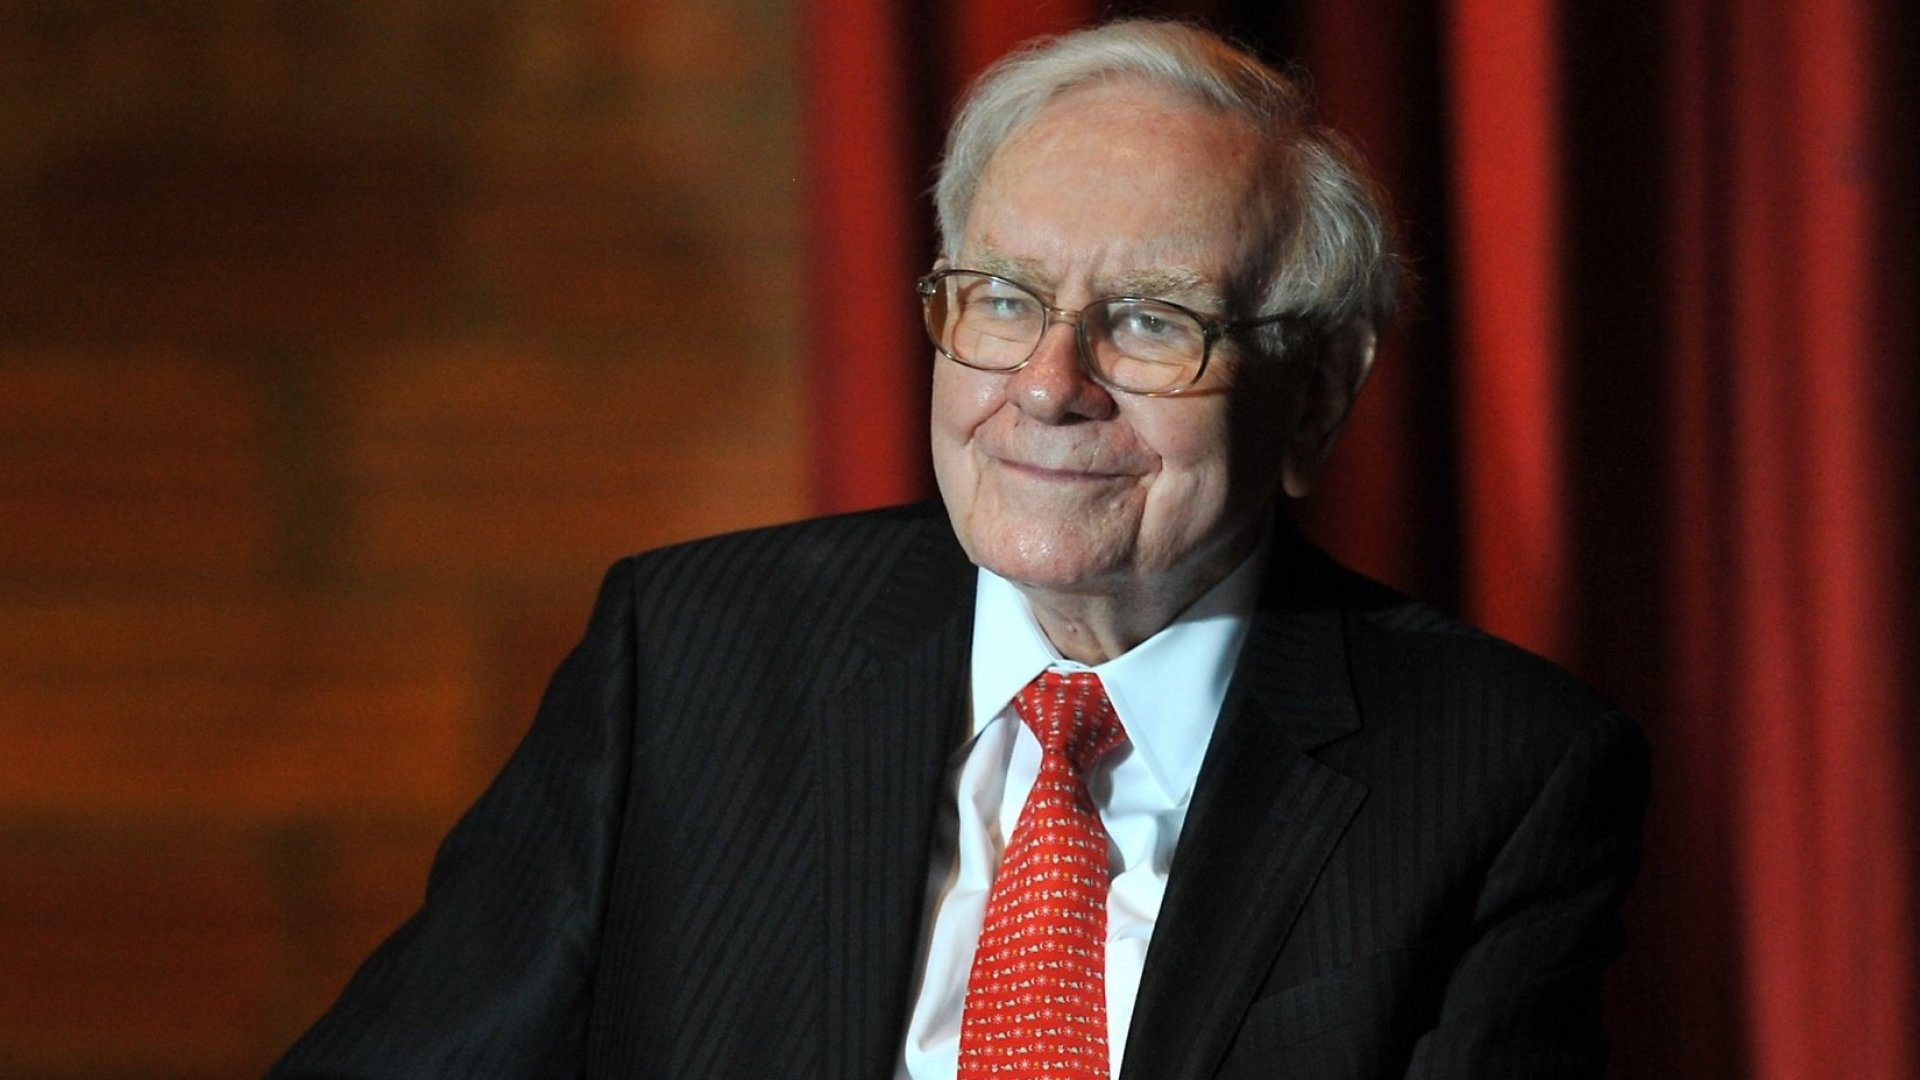 Warren Buffett Says Only 1 Trait Actually Points to a Great Leader